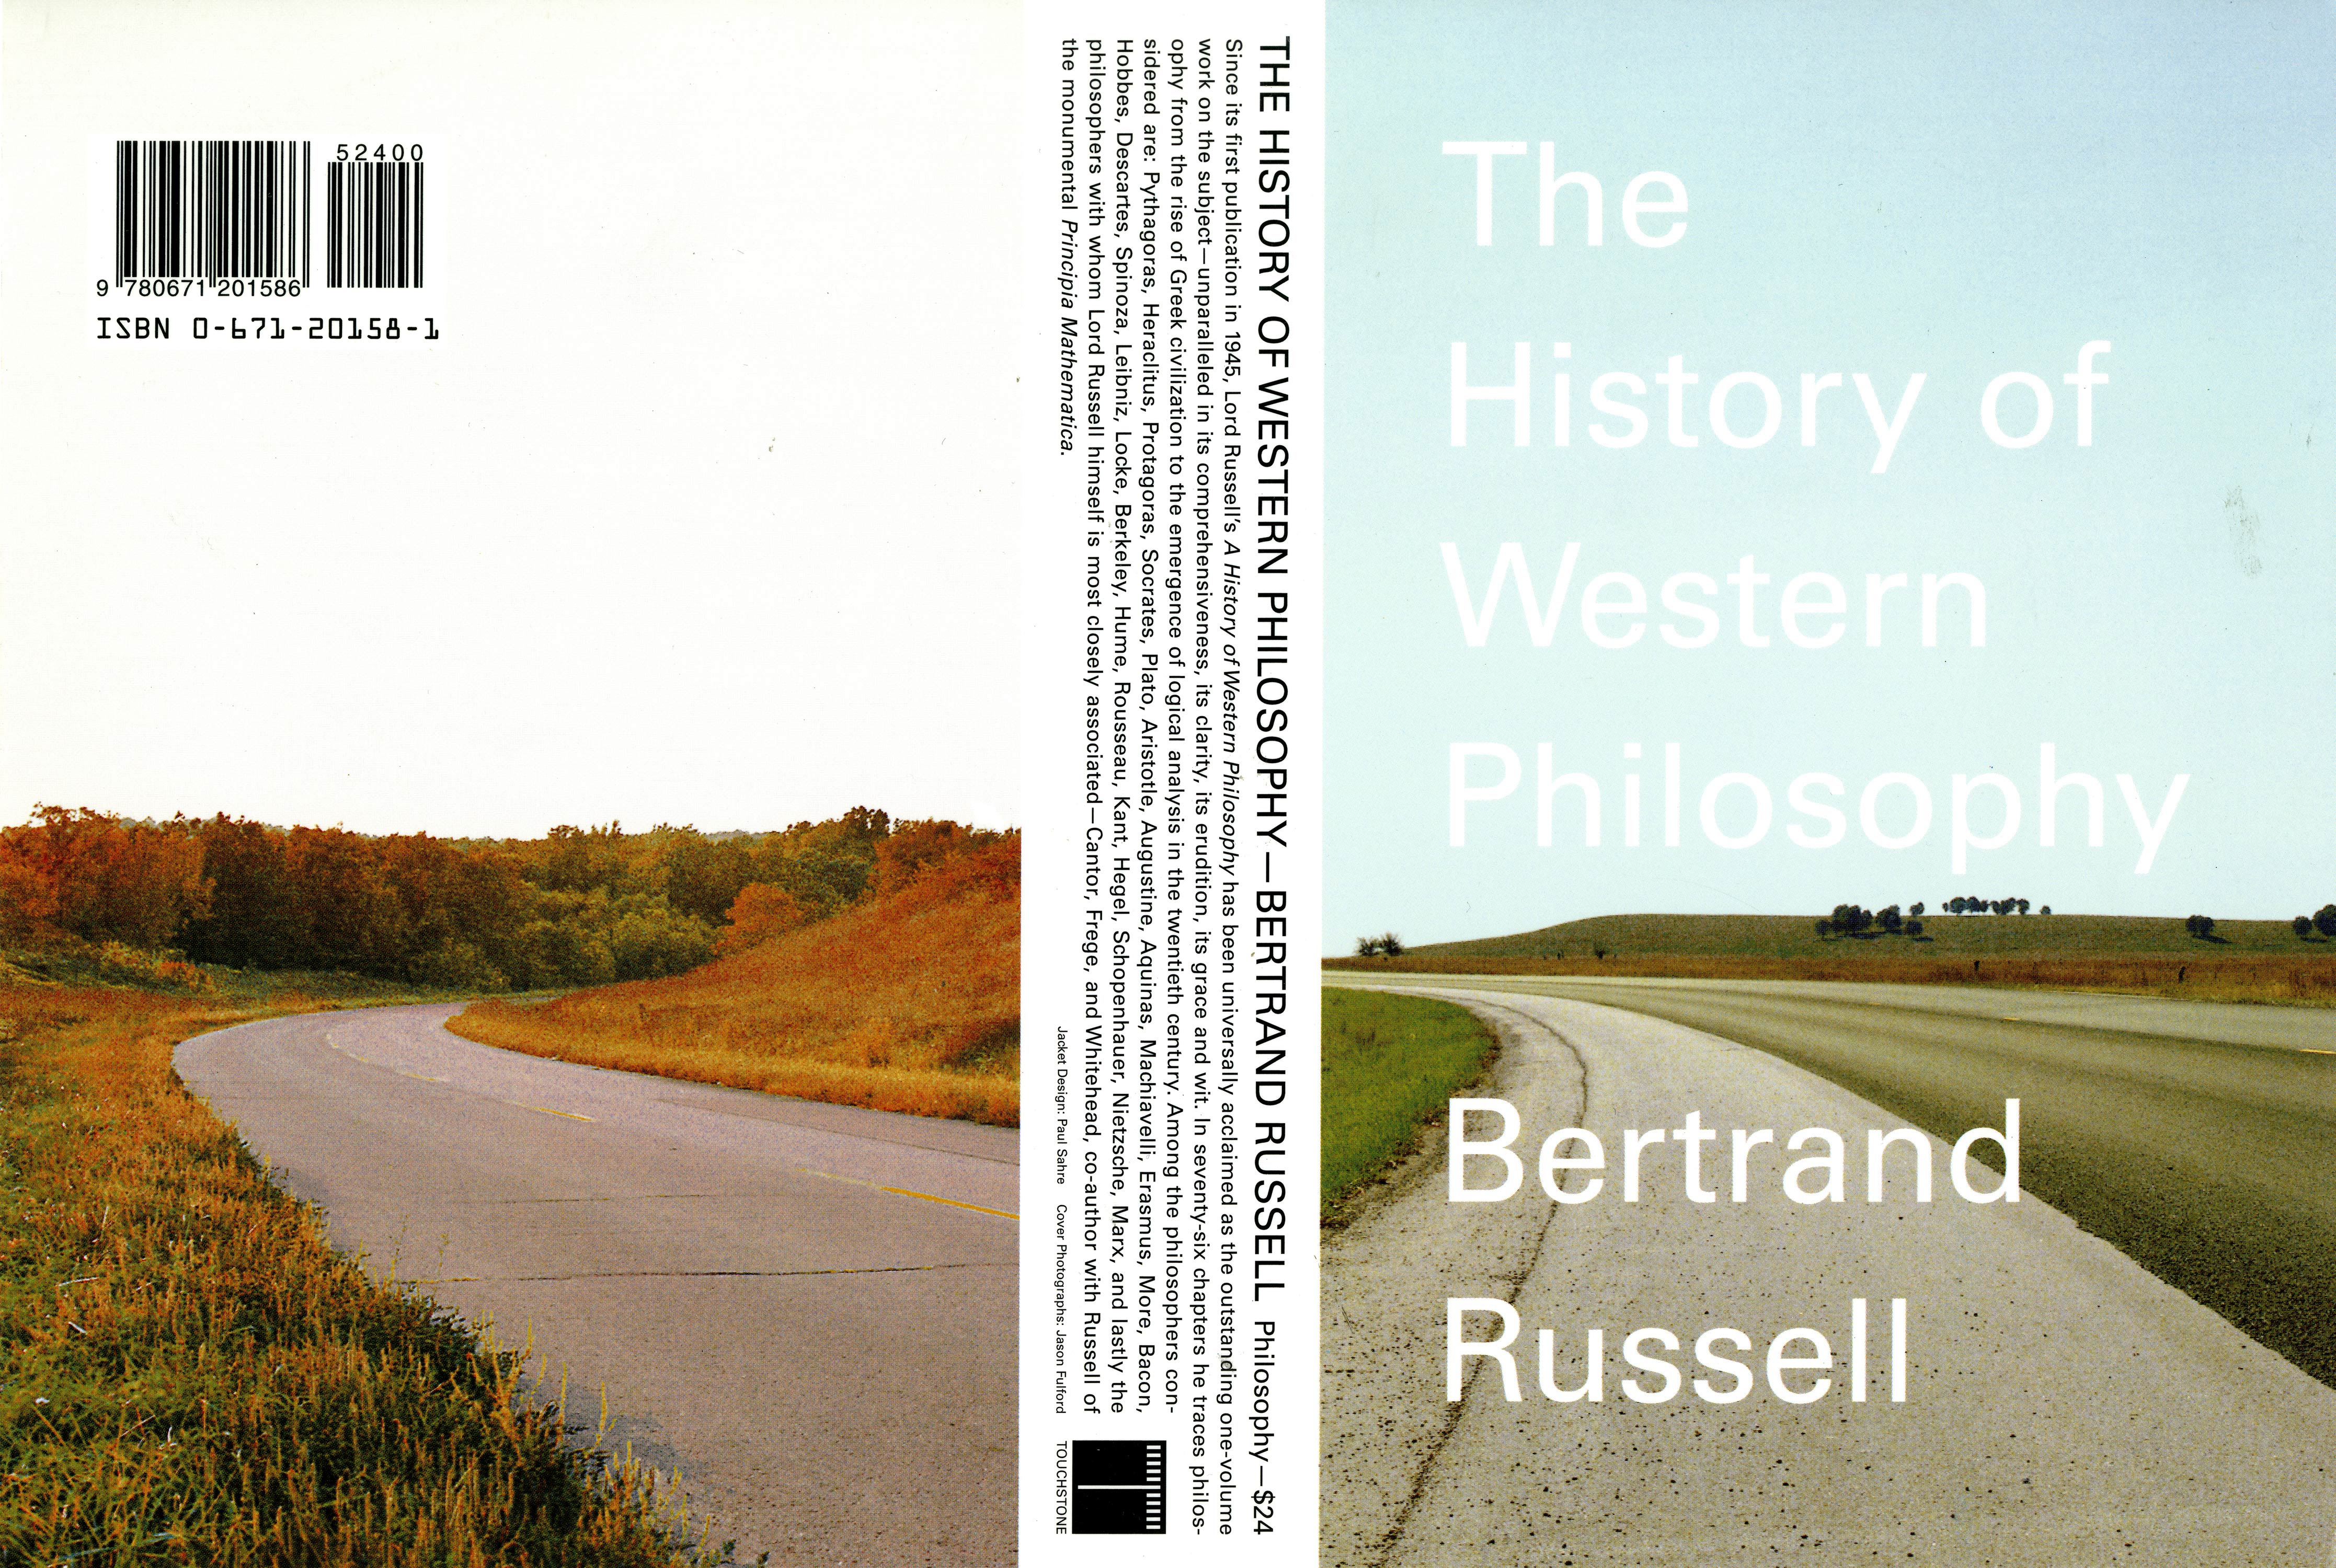 Front & back cover are each a photograph of a different empty roads curving off into the distance.